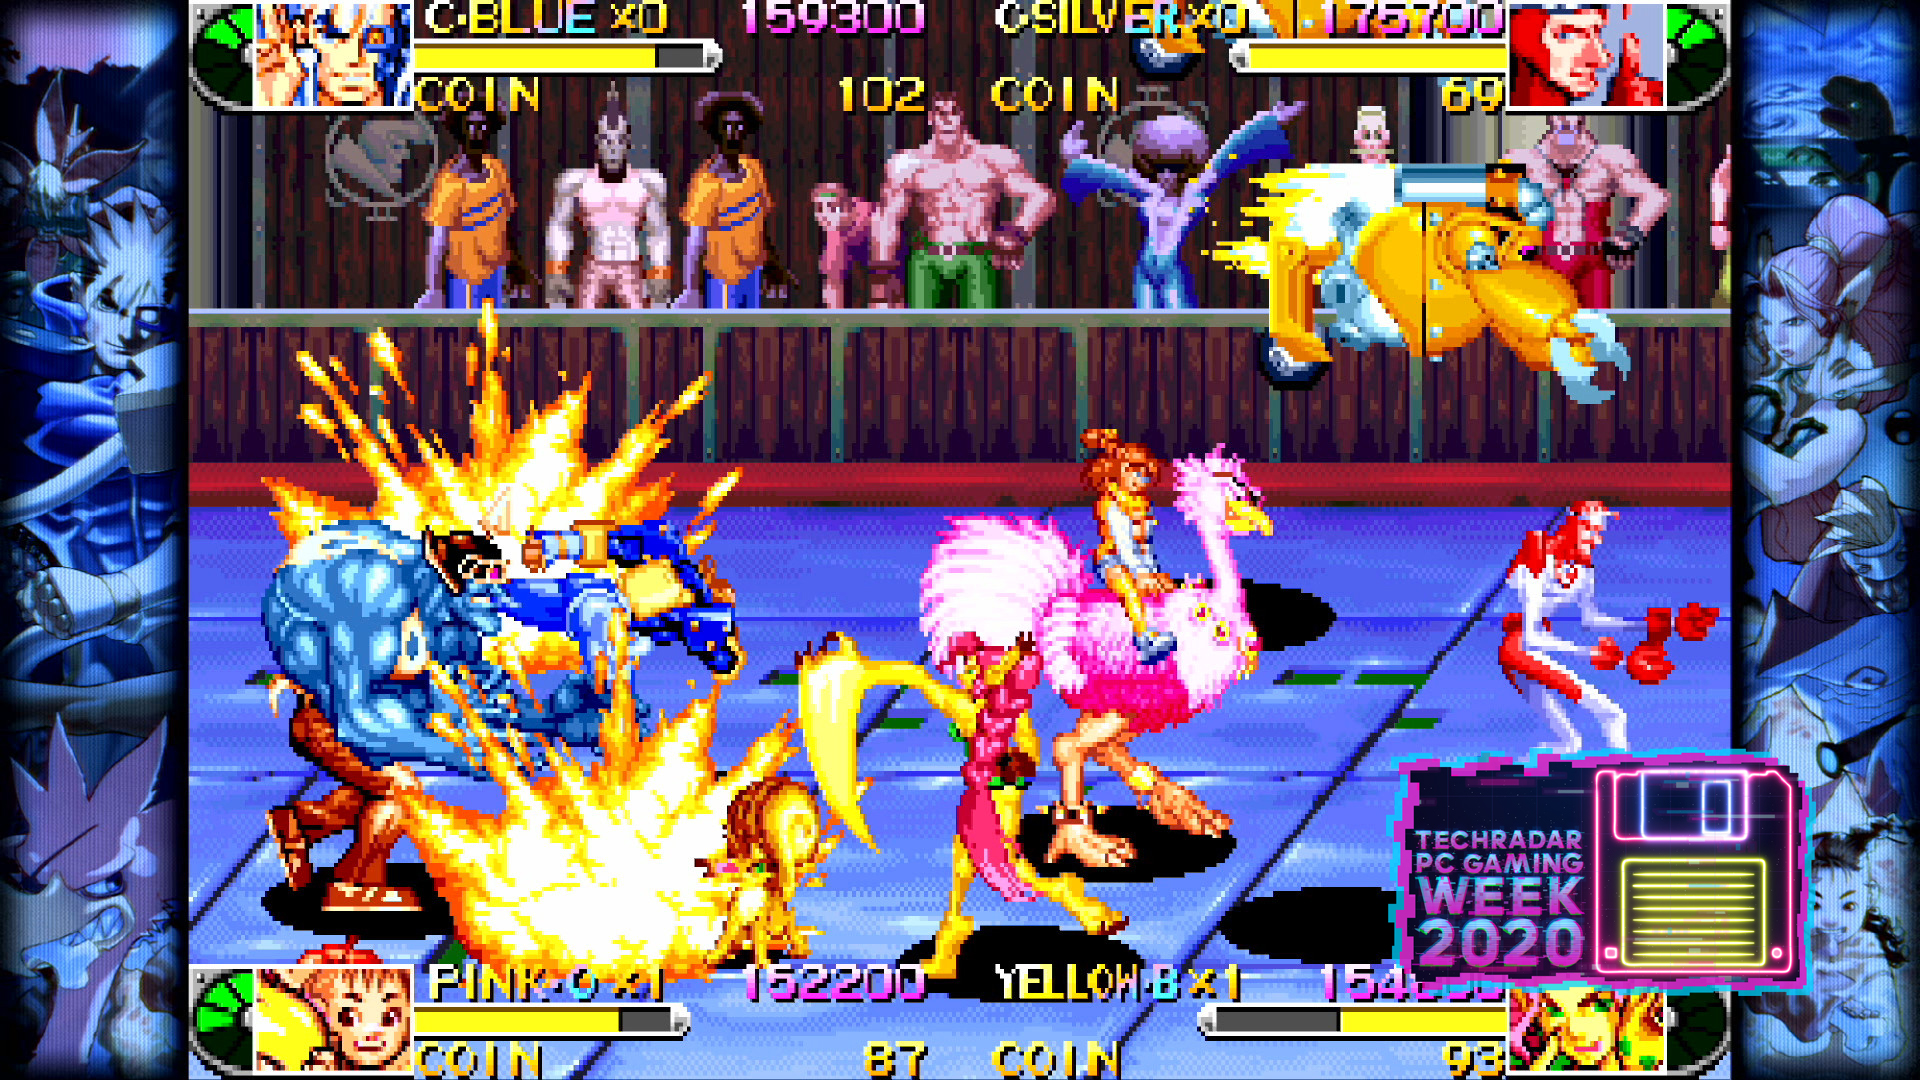 Best beat 'em up games on PC